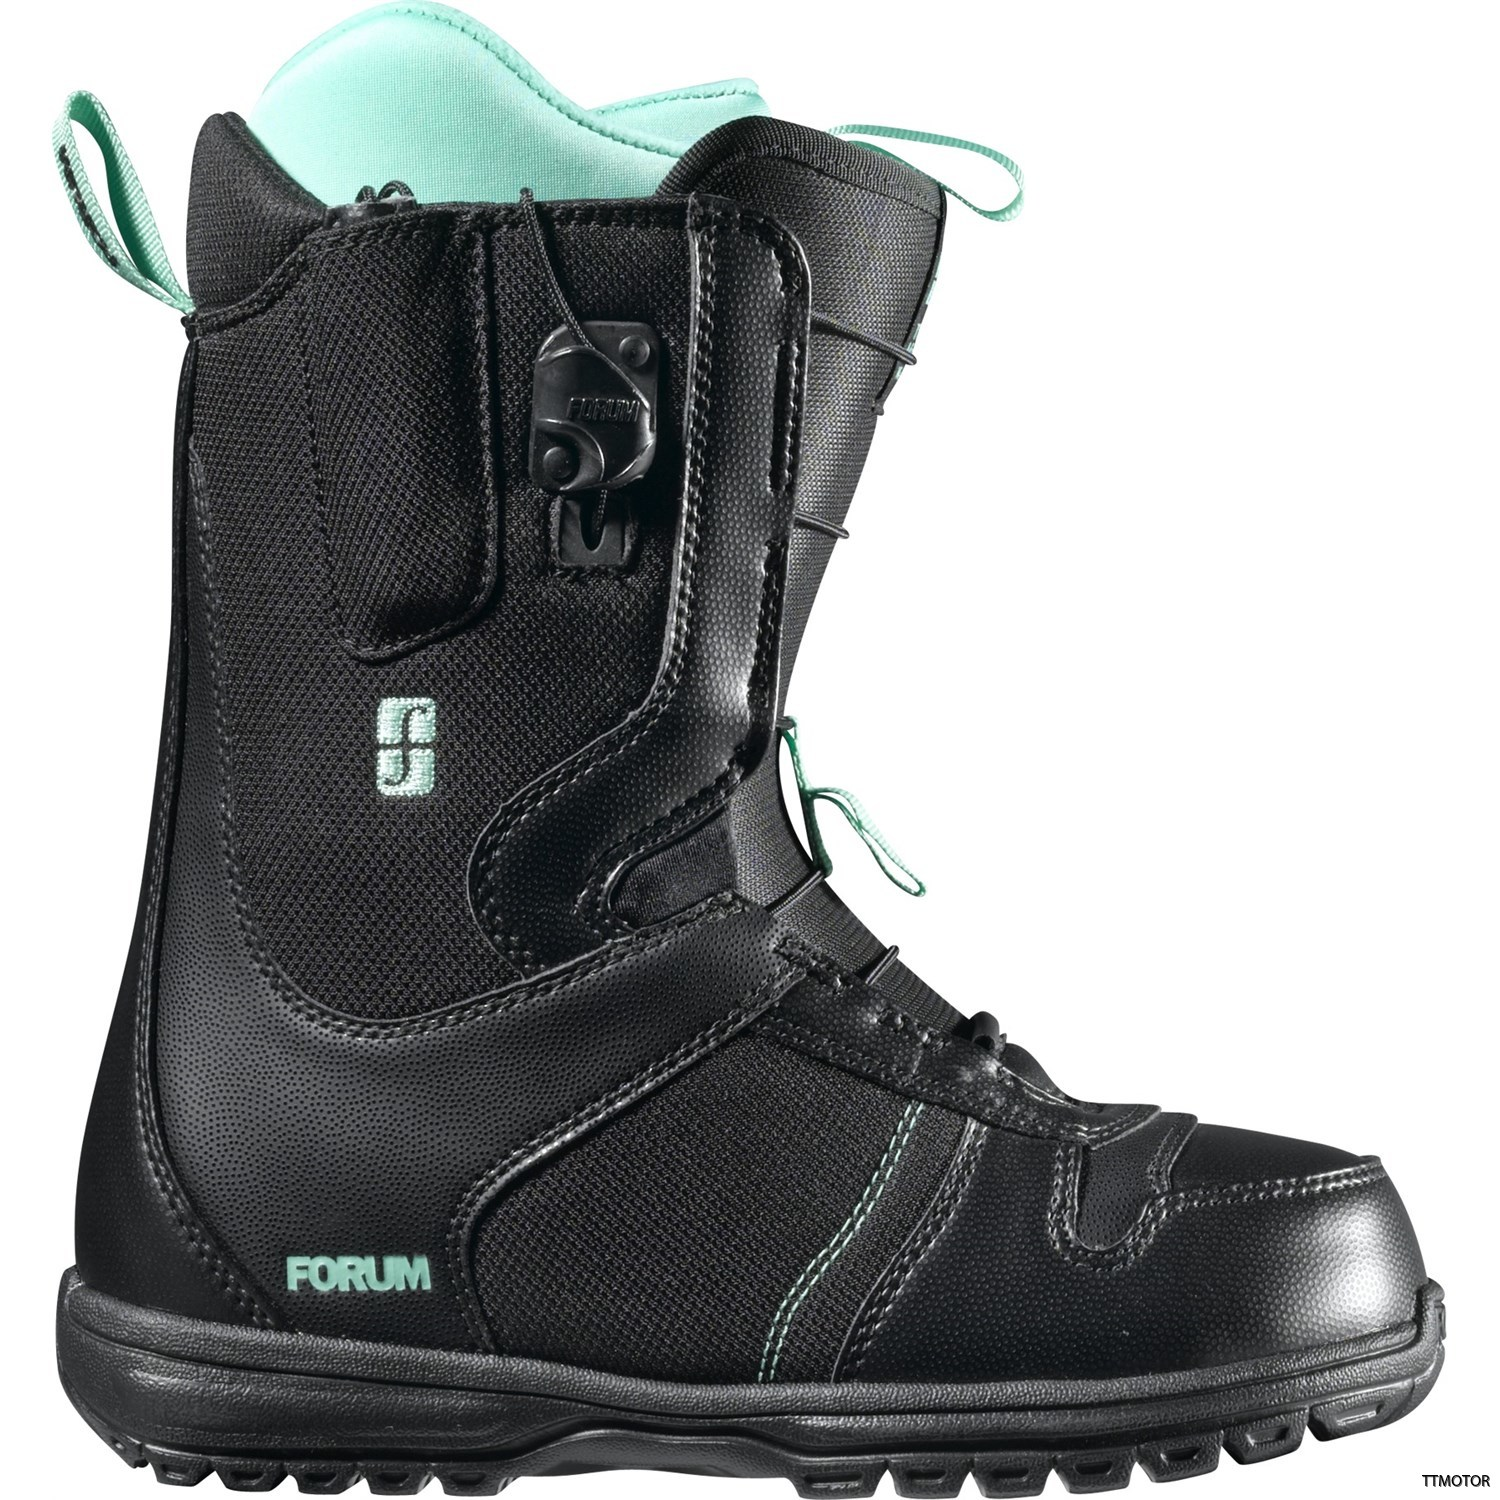 forum-mist-snowboard-boots-women-s-2013-nightlight-side